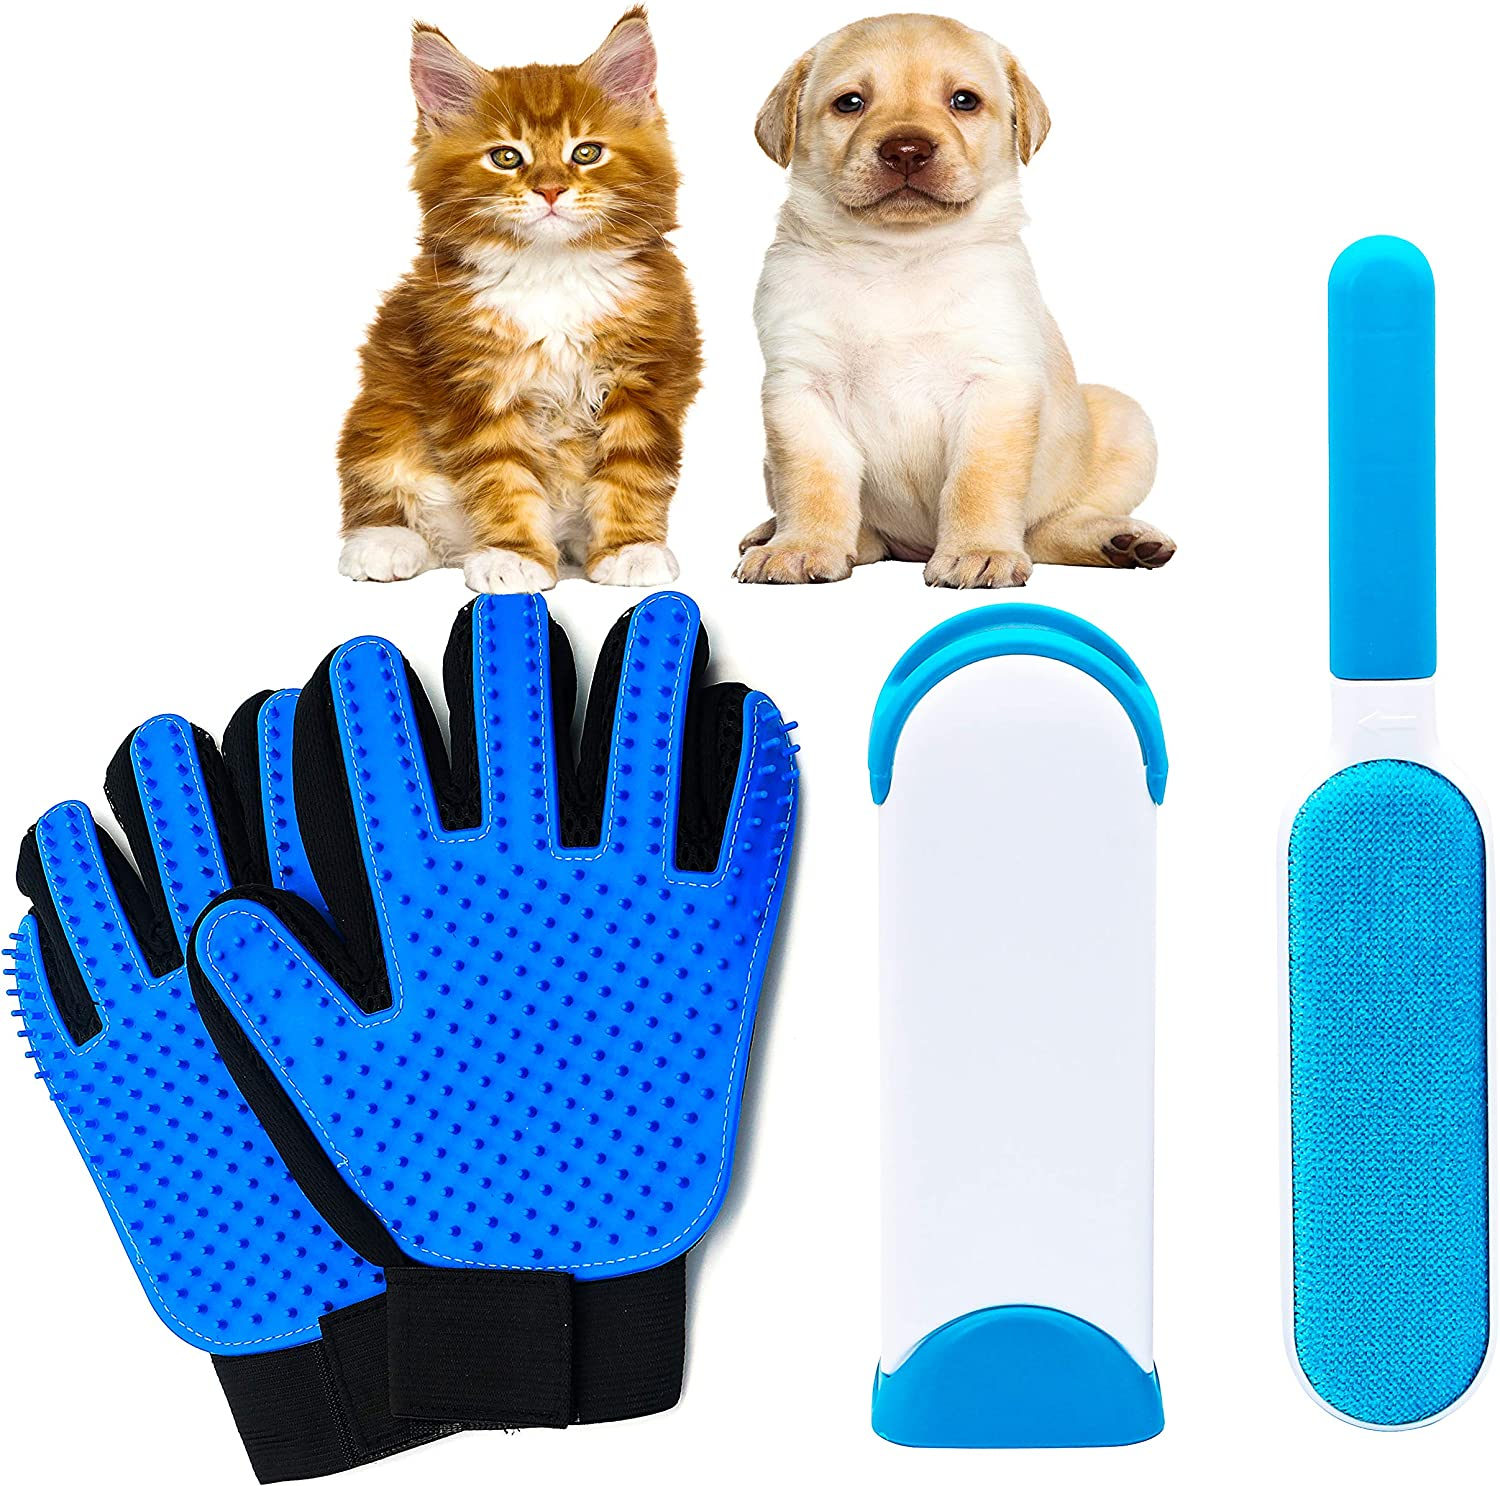 Dog Hair Remover - Pet Hair Remover -Set with Silicone Shedding Mitt - Reusable Double Side - Pet Fur Remover - Self Cleaning Brush – pet Grooming Gloves for Cats and Dogs – 3 pet Hair Removal Tools